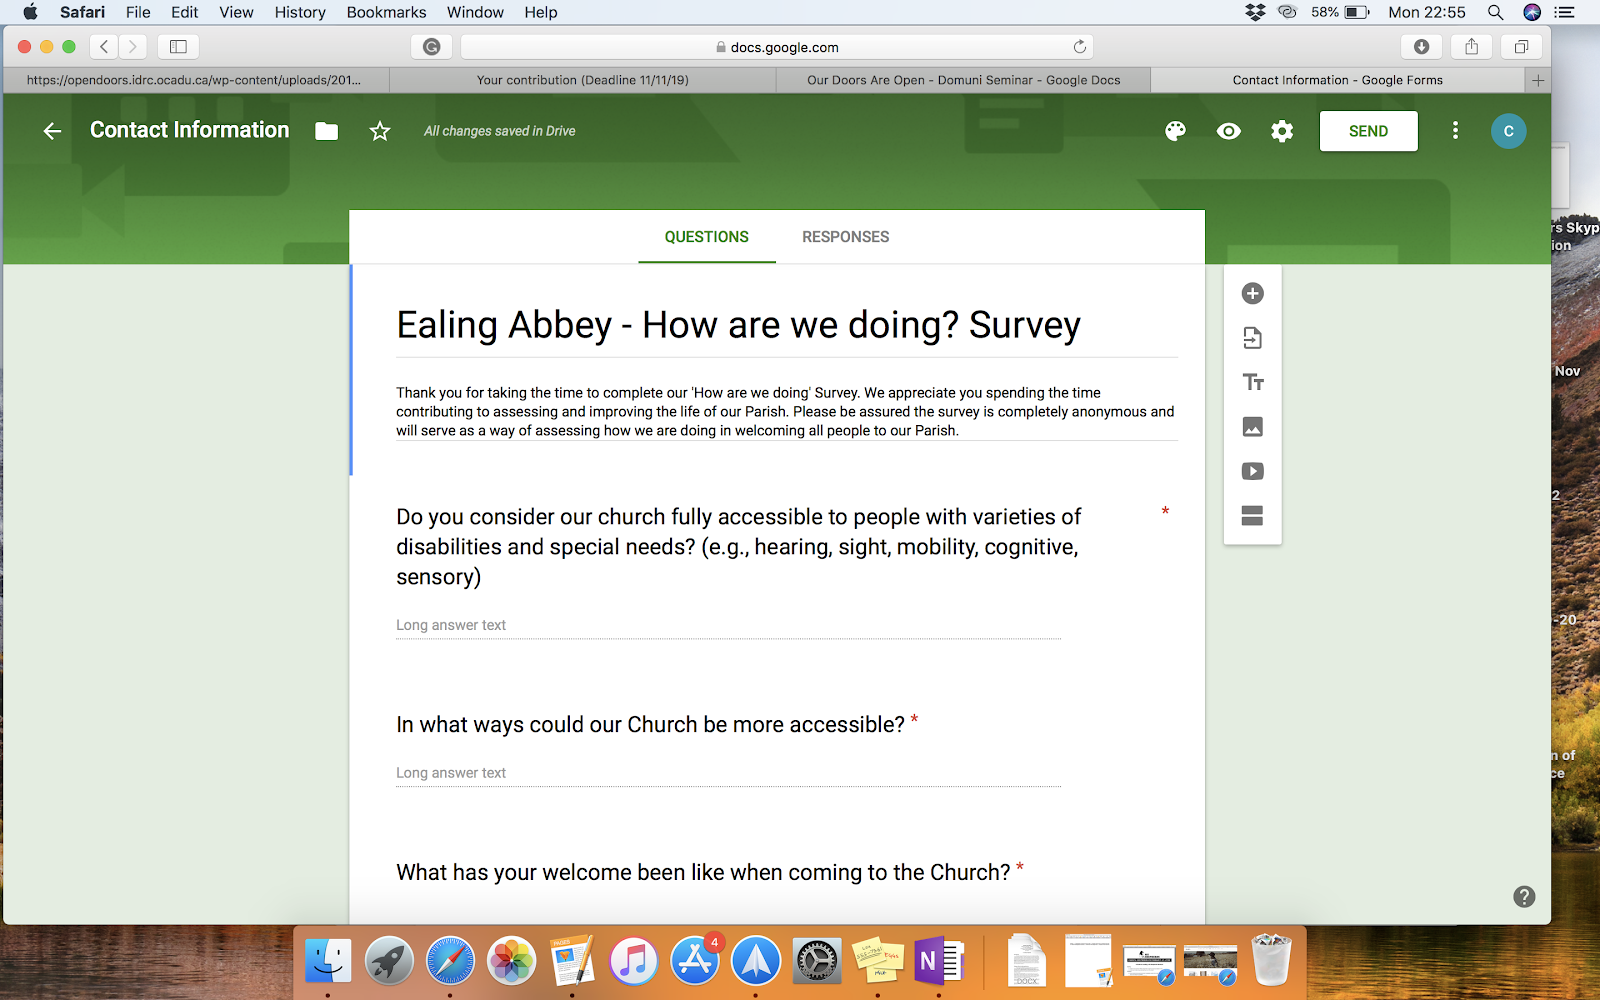 Screenshot of the online survey. Ealing Abbey - How are we doing? Survey.  Question 1: Do you consider our church fully accessible to people with varieties of disabilities and special needs?  Question 2: In what ways could our Church be more accessible? Question 3: What has your welcome been like when coming to the Church?